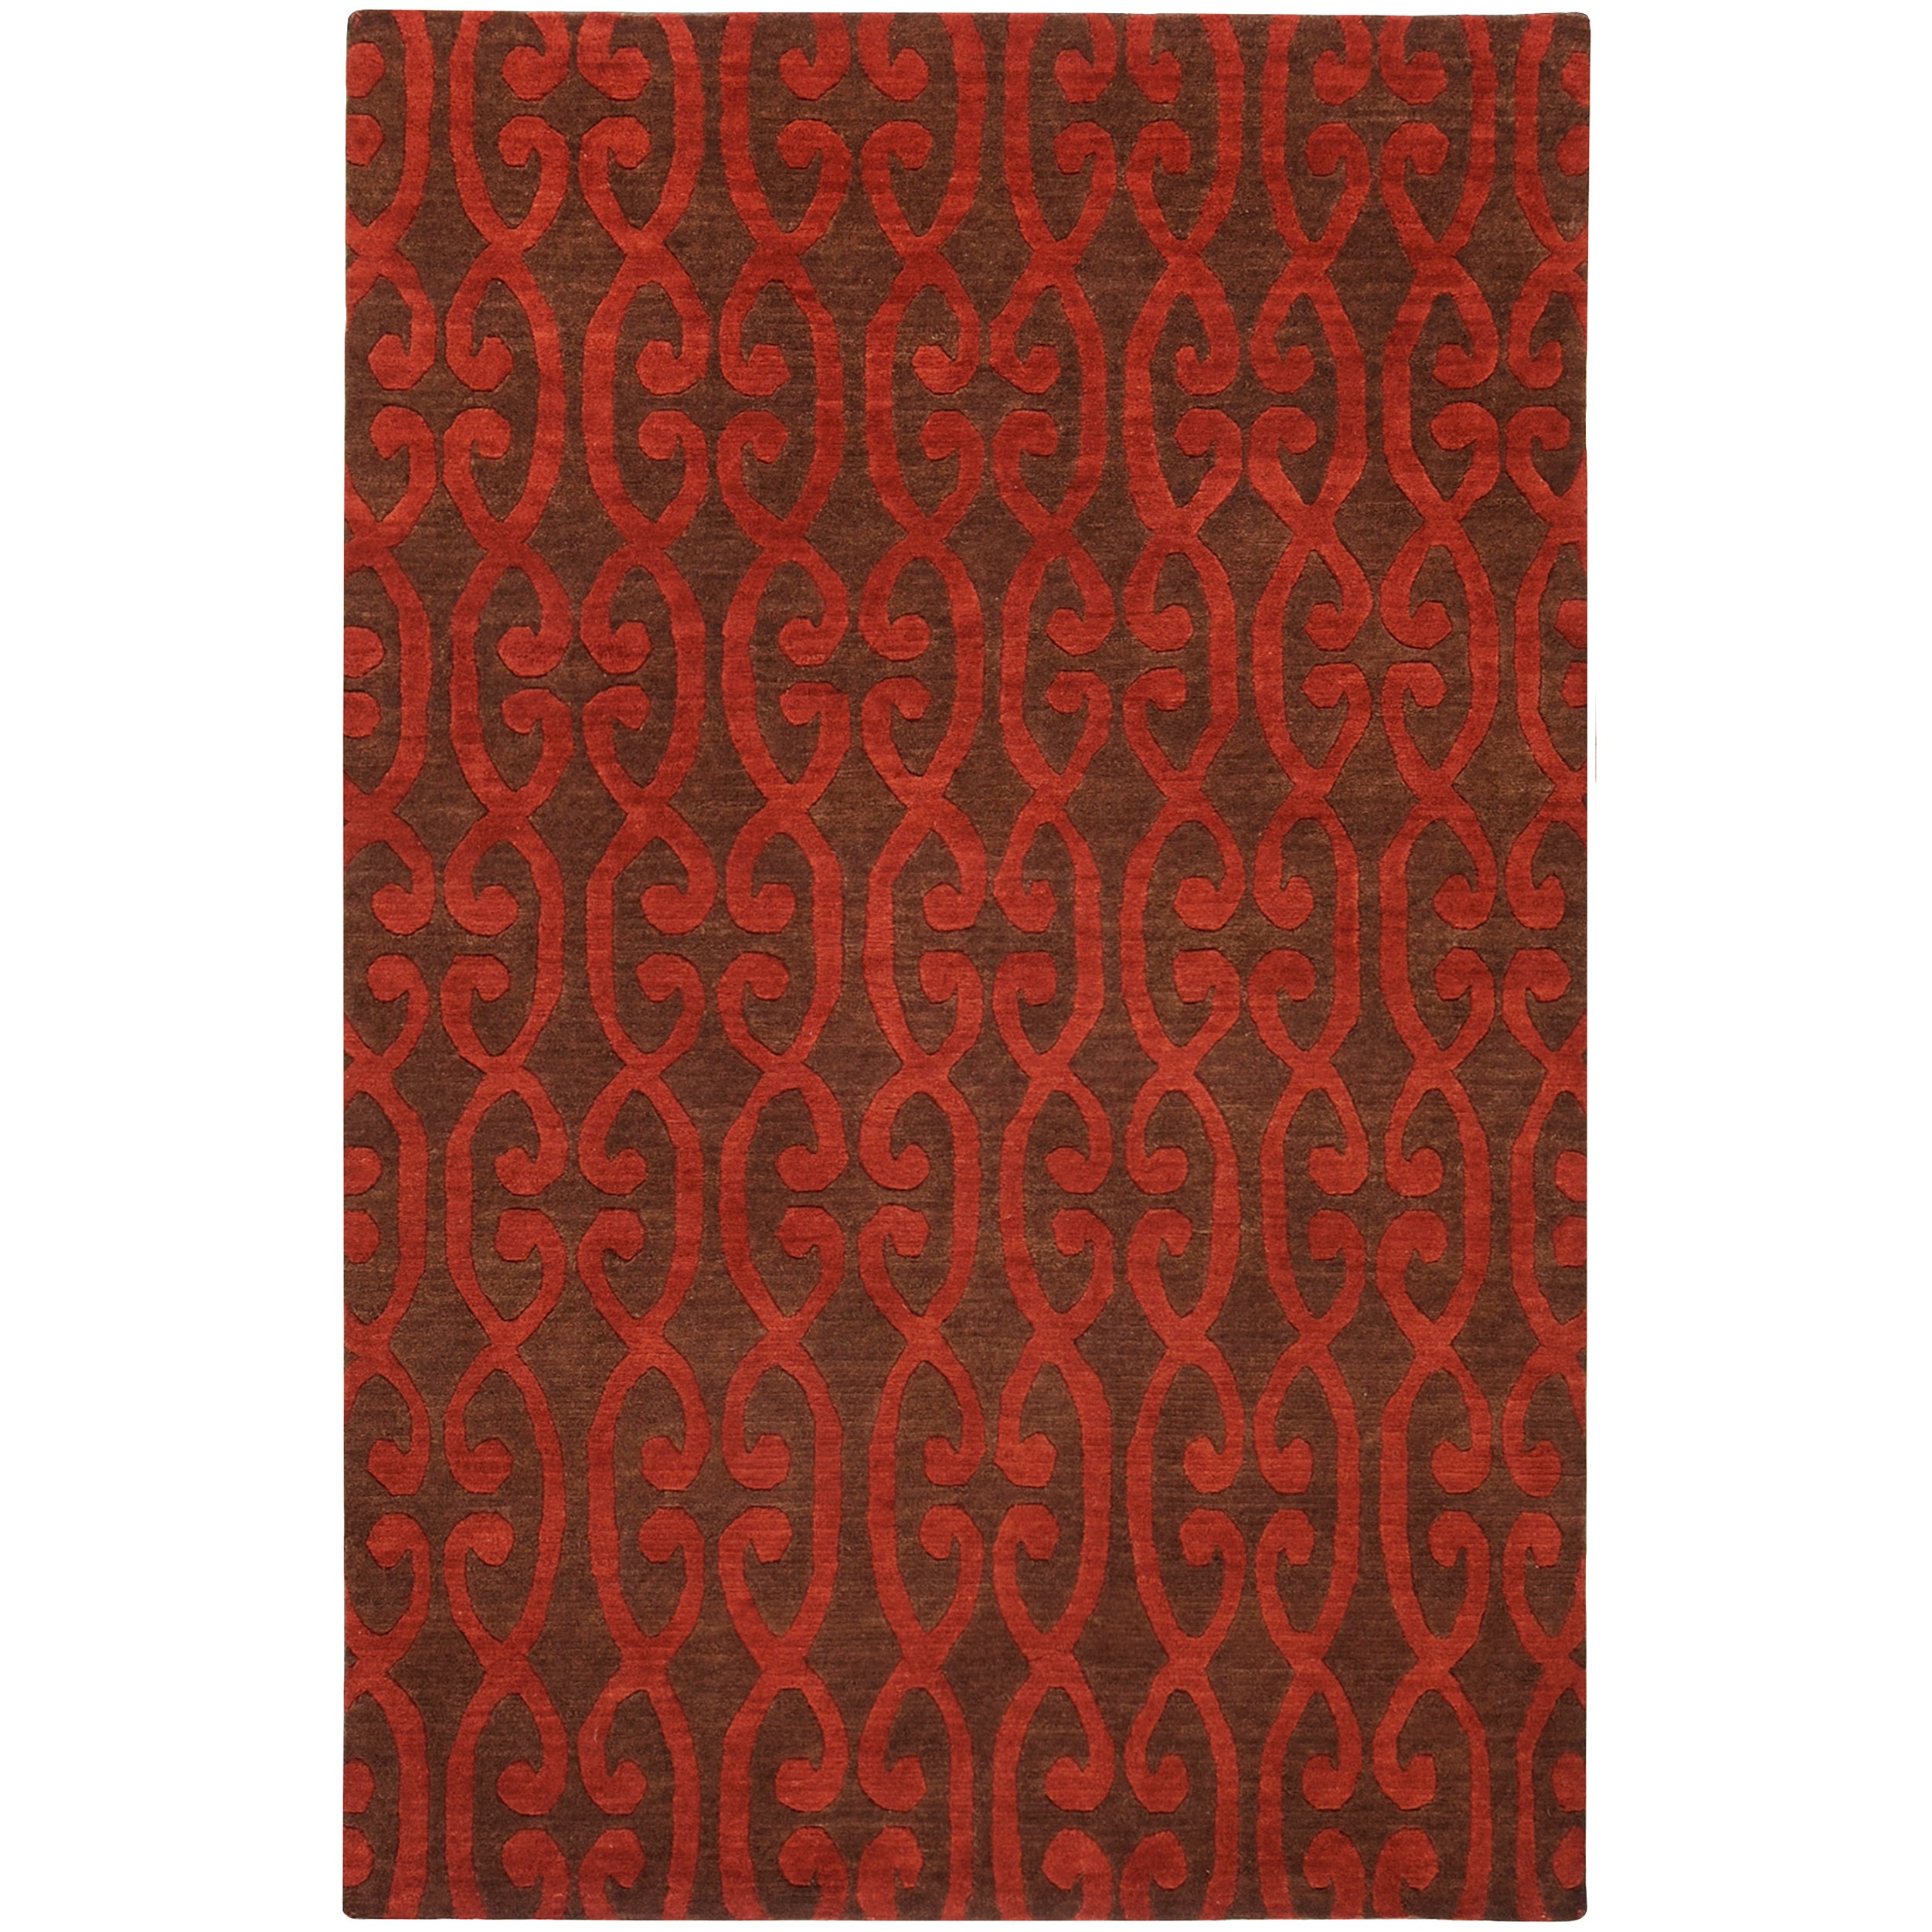 Hand-knotted Multicolored Eau Claire Wool Rug (2' x 3')